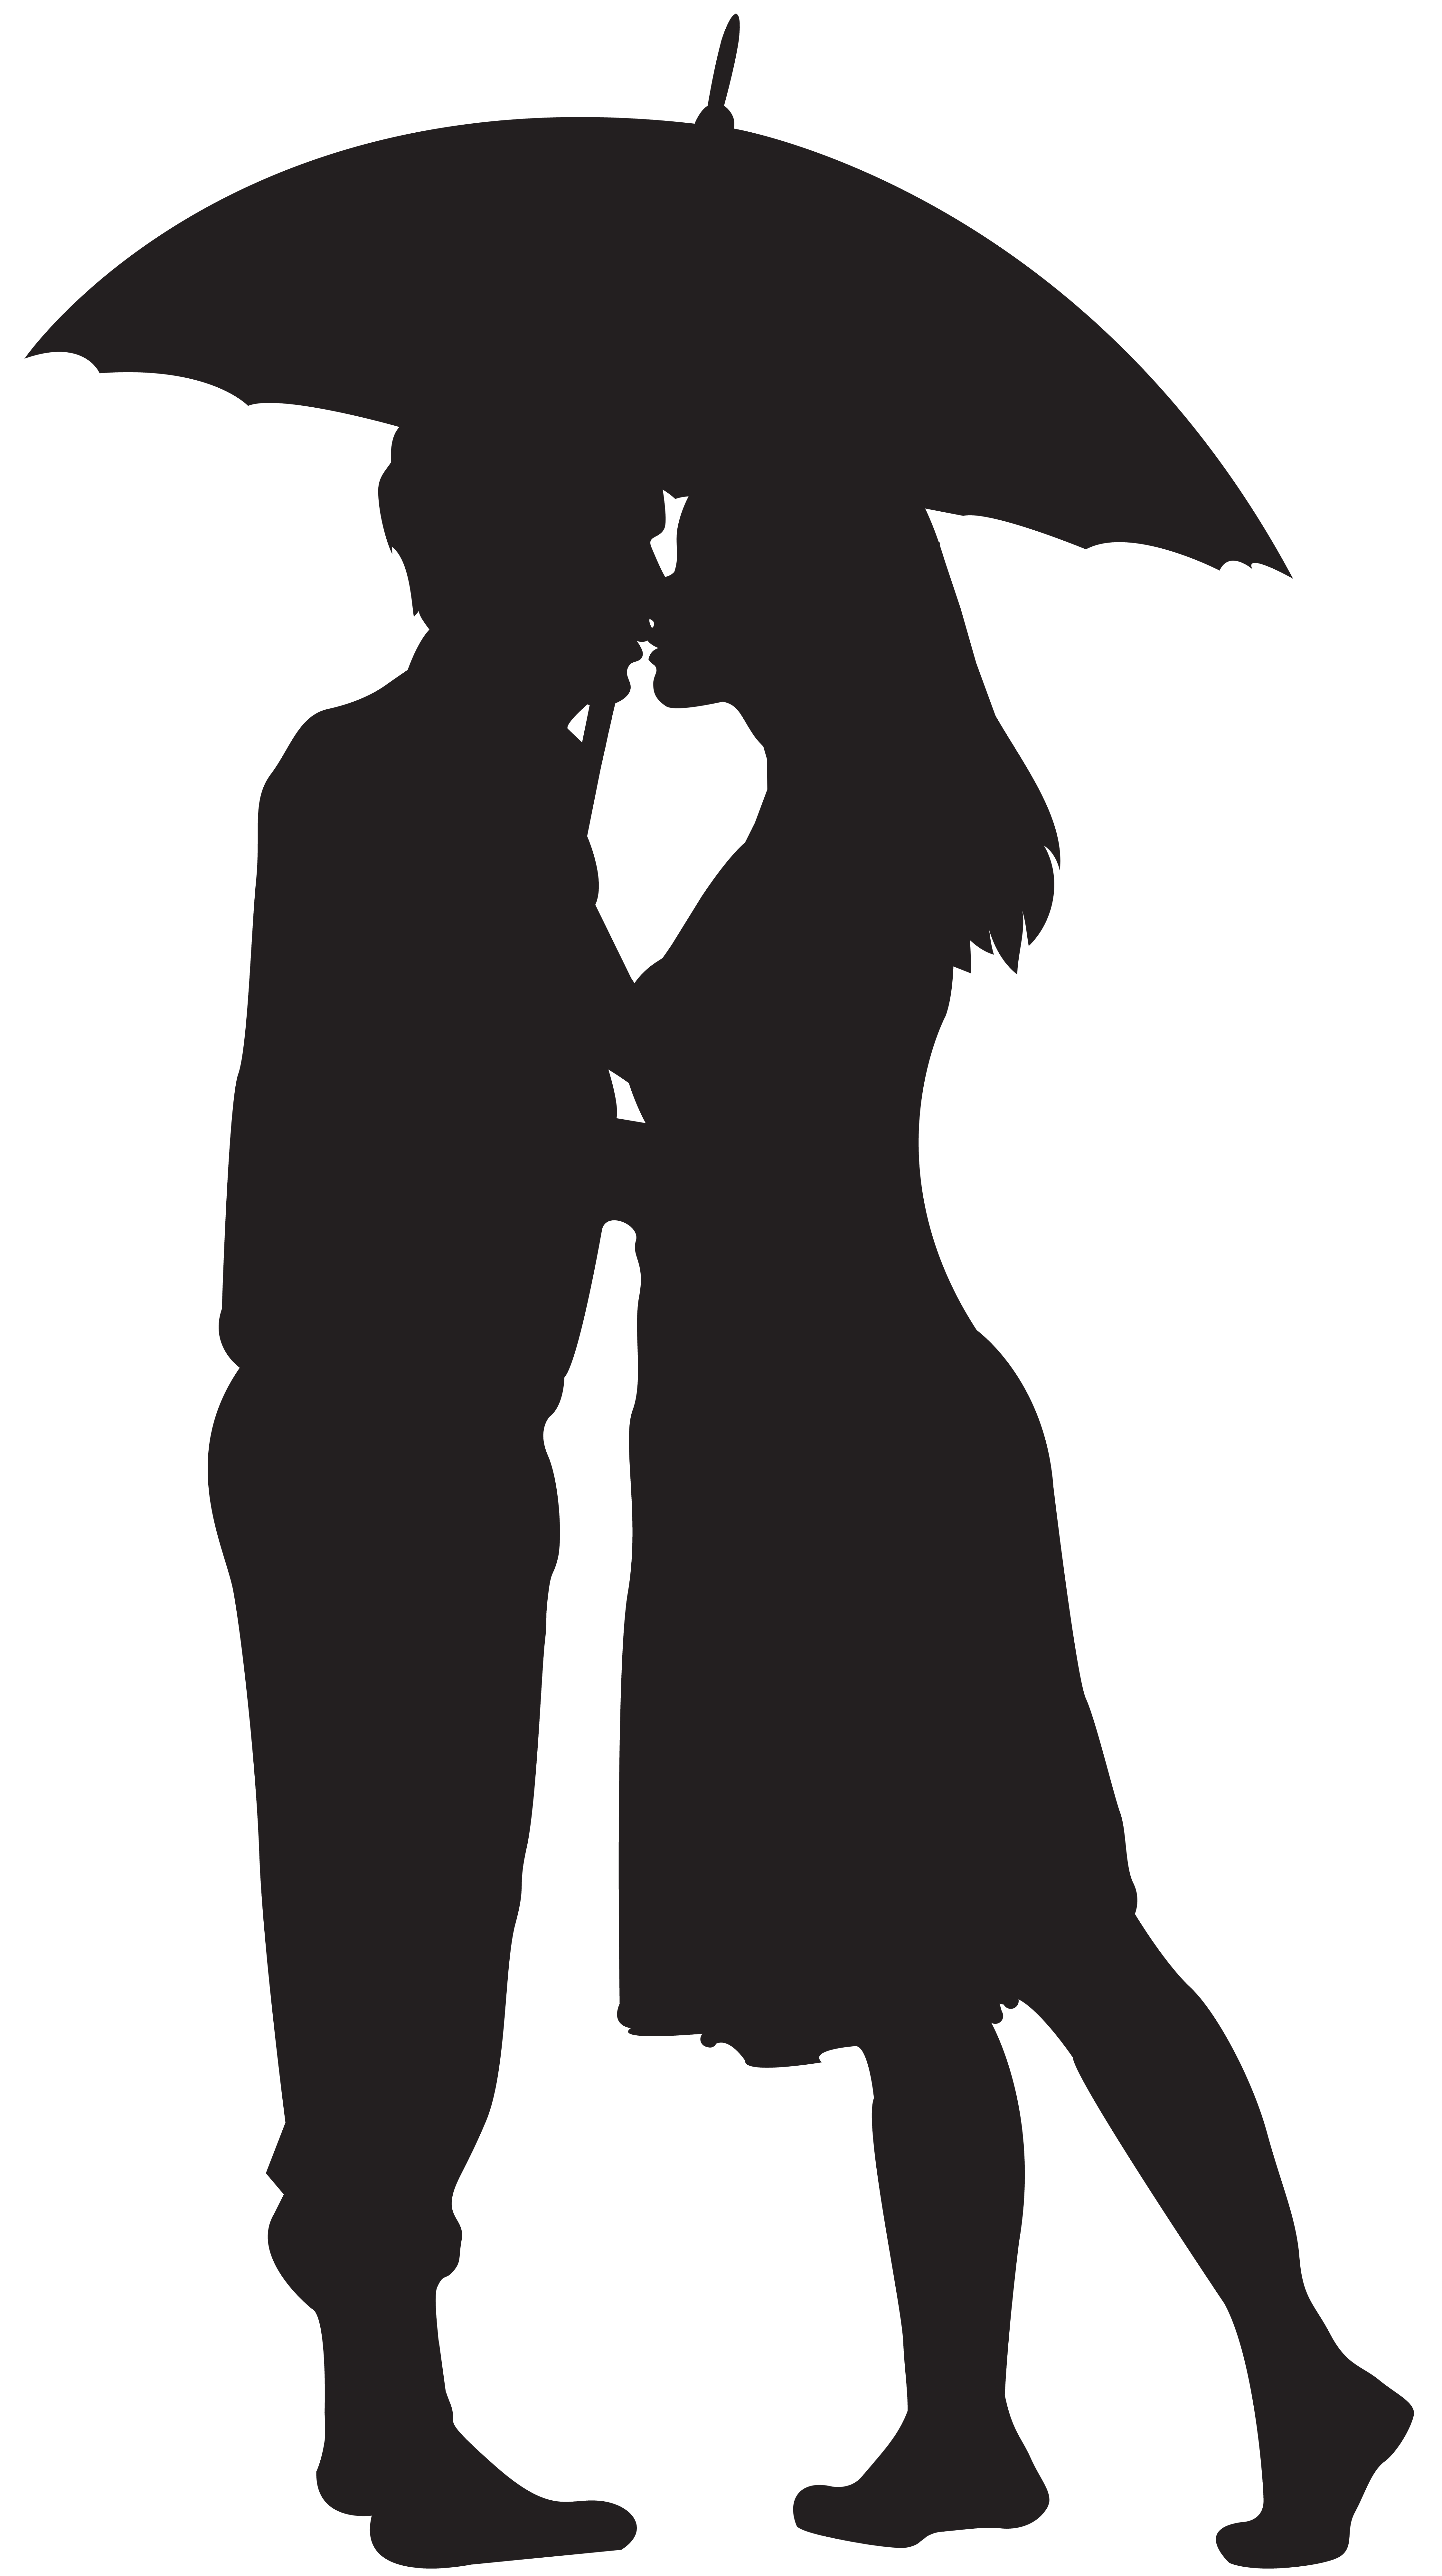 Couple silhouette png. Loving clip art image